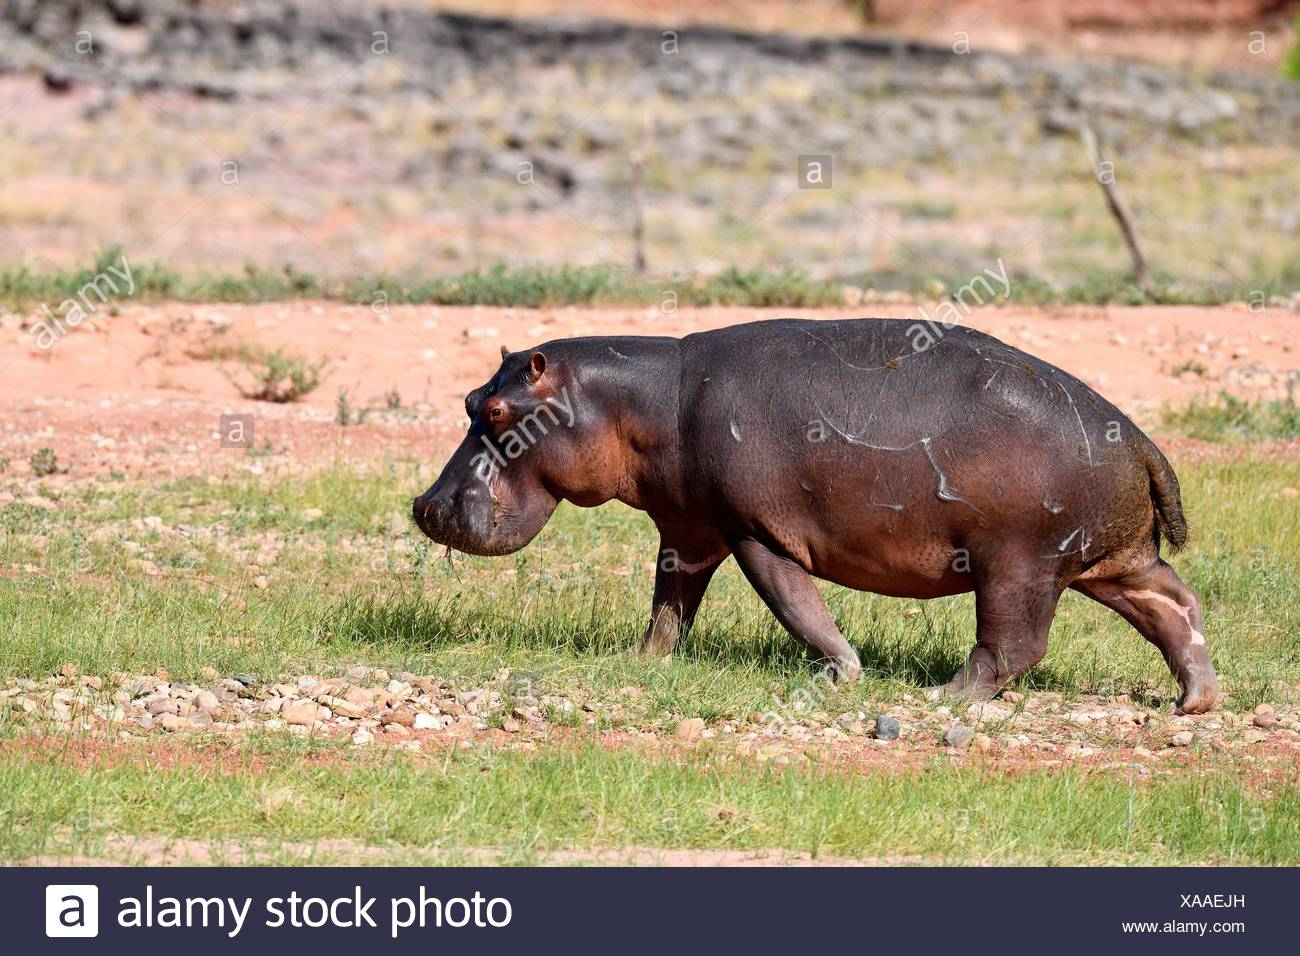 Hippopotamus (Hippopotamus) walking in Matusadona National Park, Zimbabwe. - Stock Image